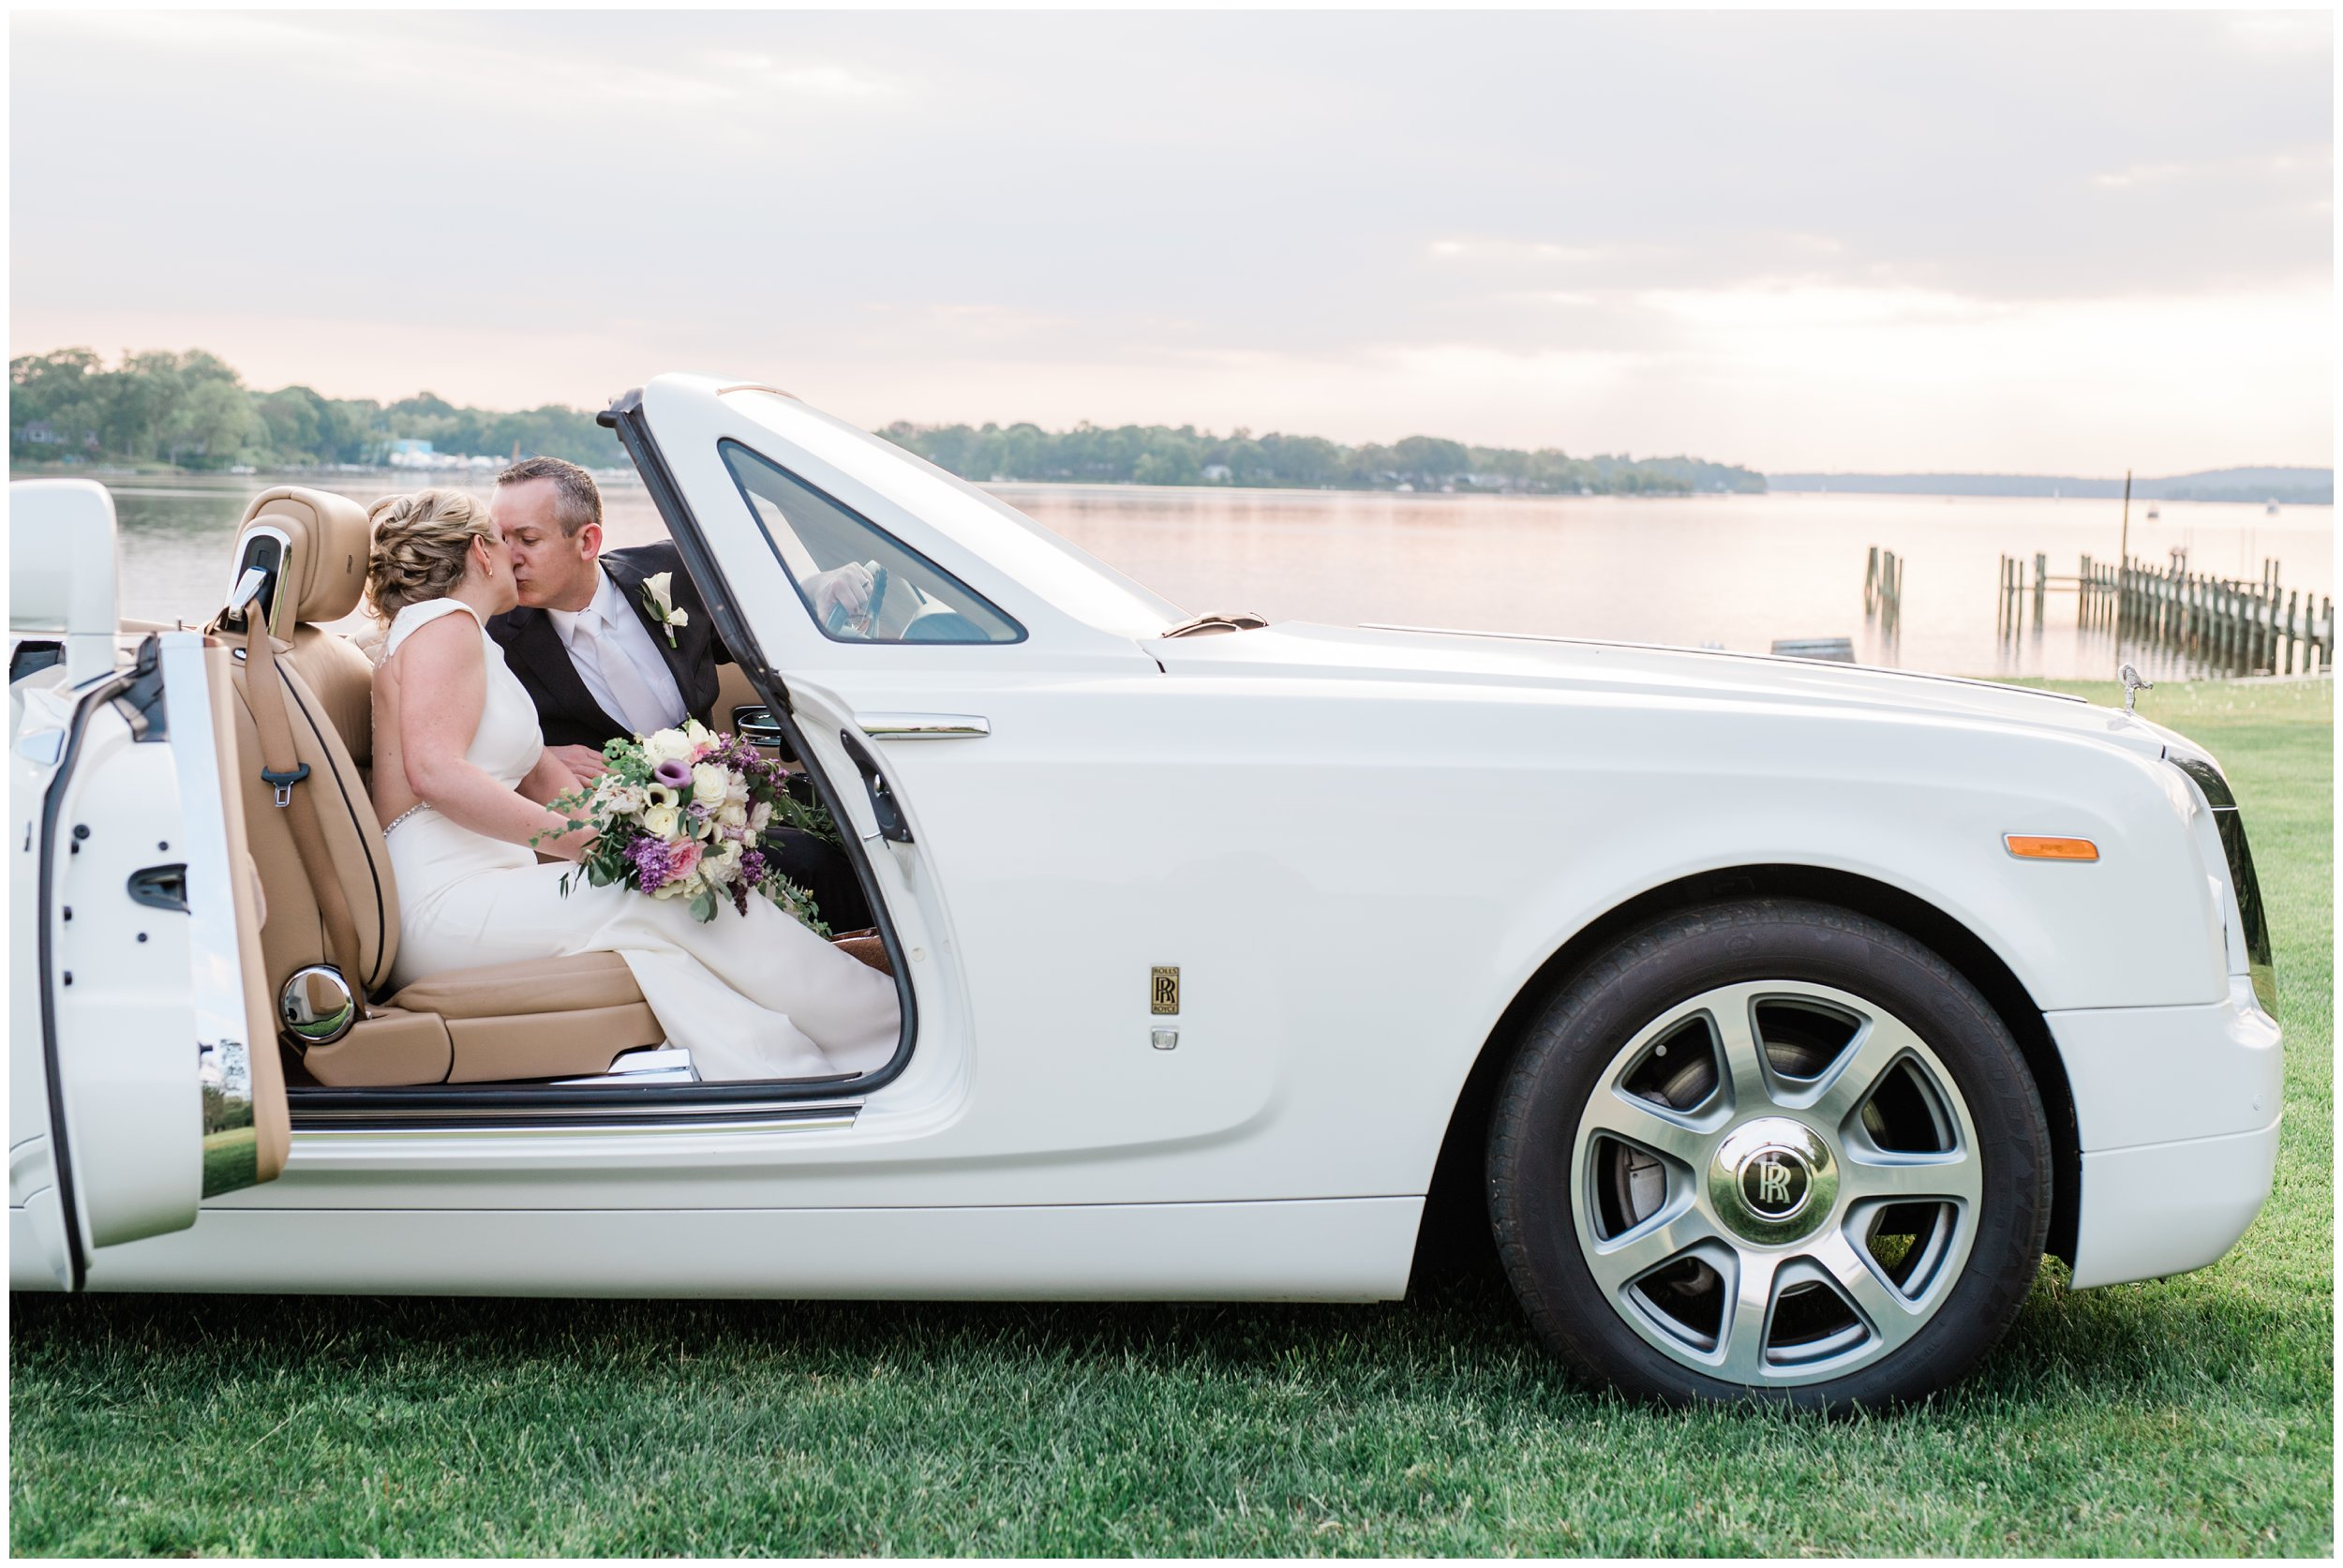 newlyweds in rolls royce